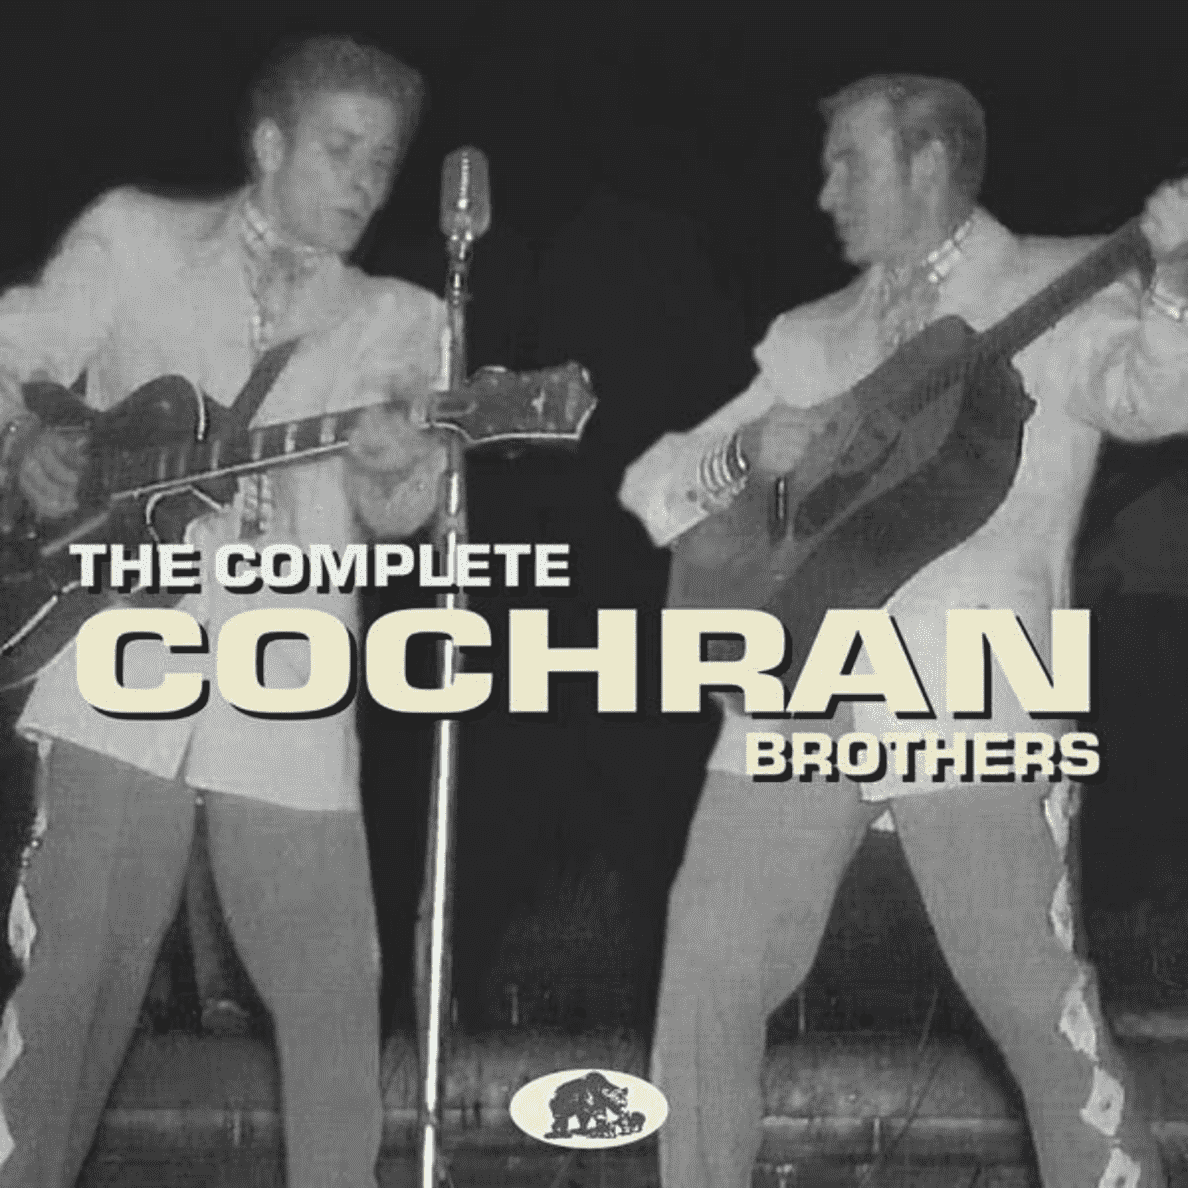 The Complete Cochran Brothers Cochran Brothers auf CD